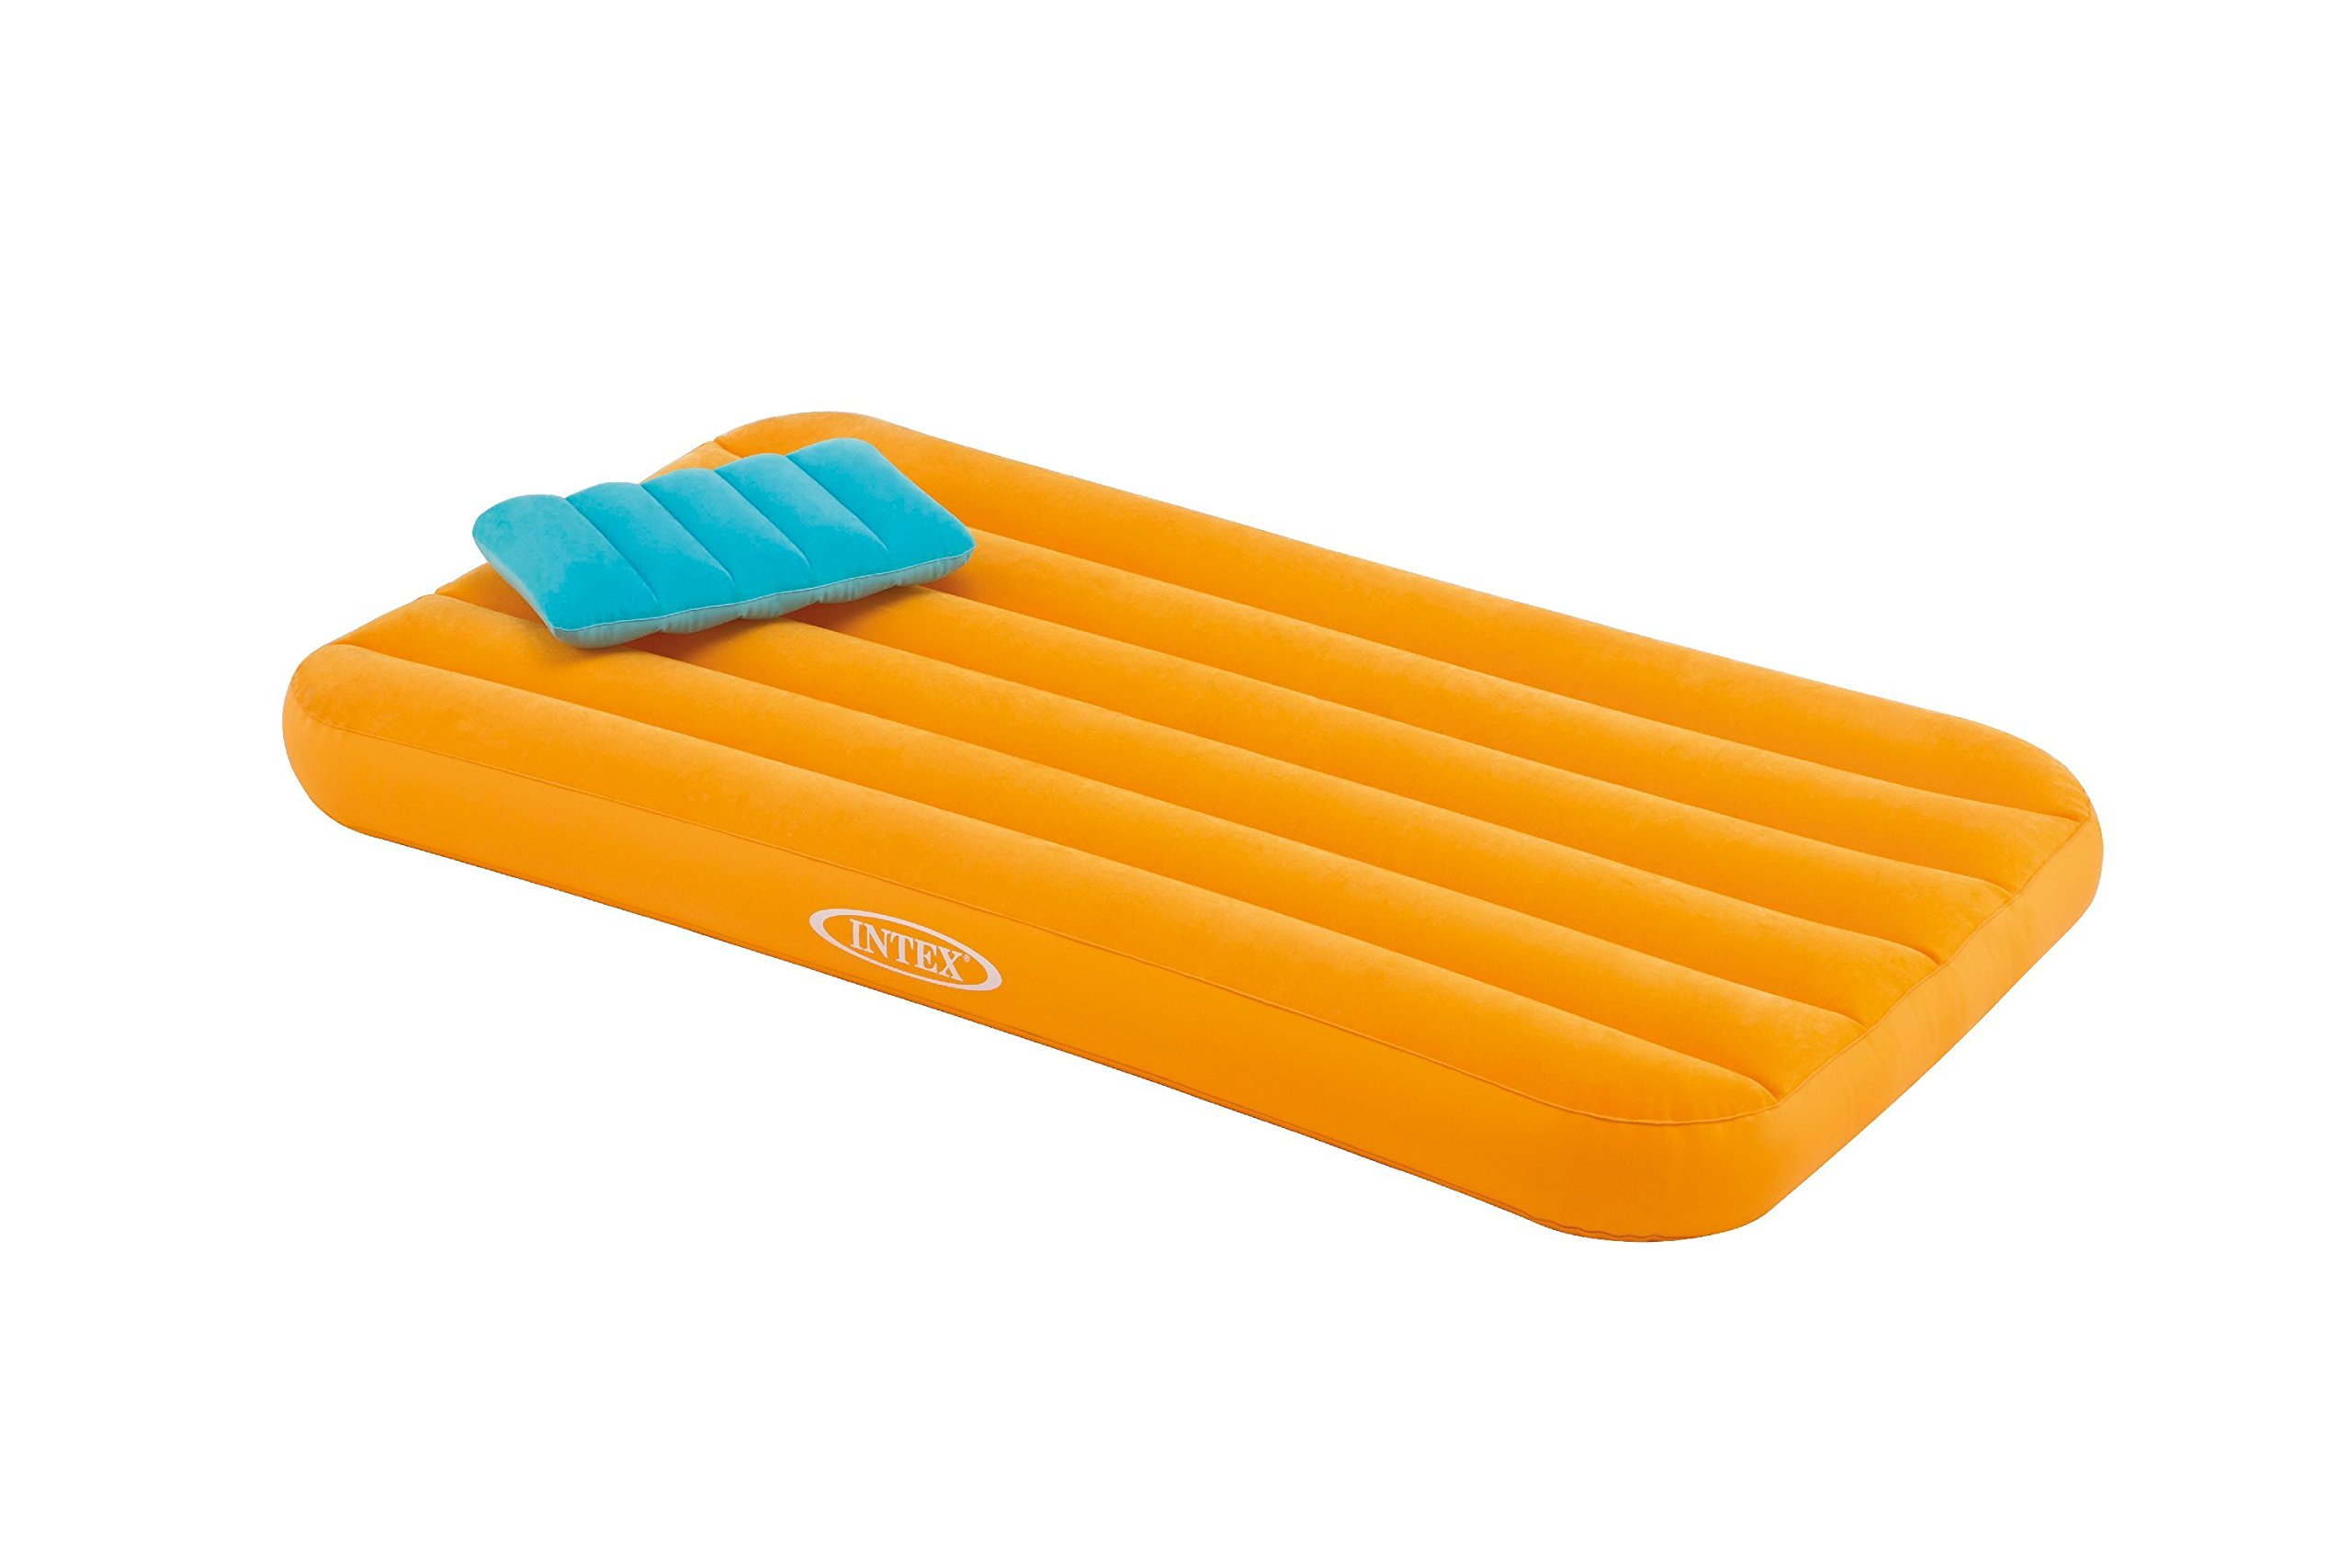 Intex Cozy Kidz Airbed w/Inflatable Pillow, Orange